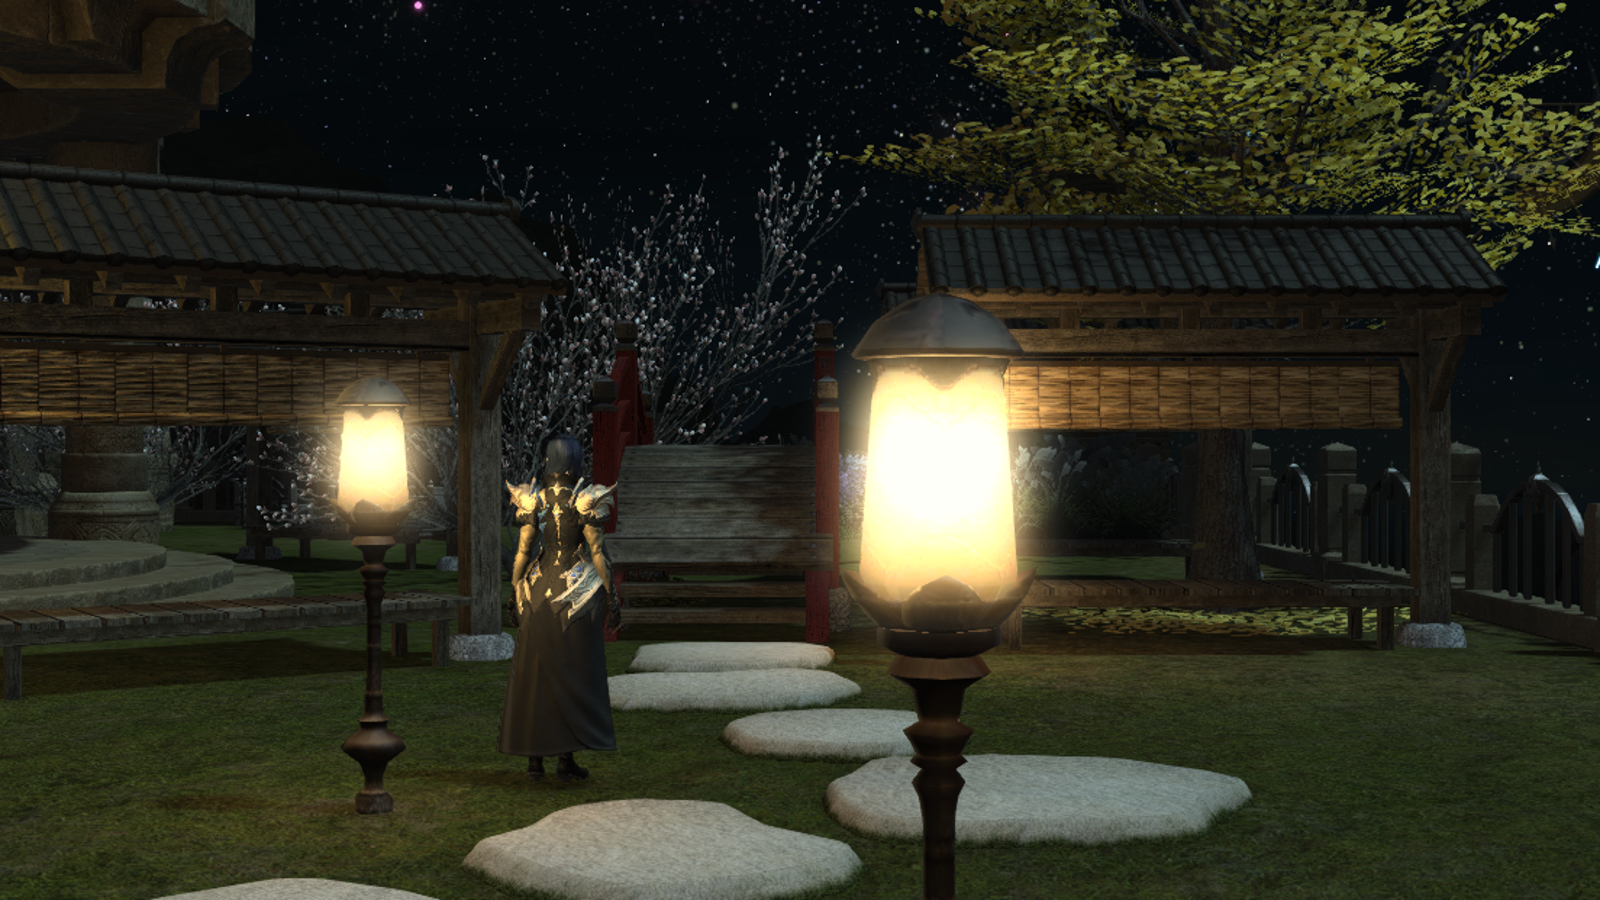 Two Final Fantasy Xiv Players Buy Dozens Of Homes Spark Debate Over